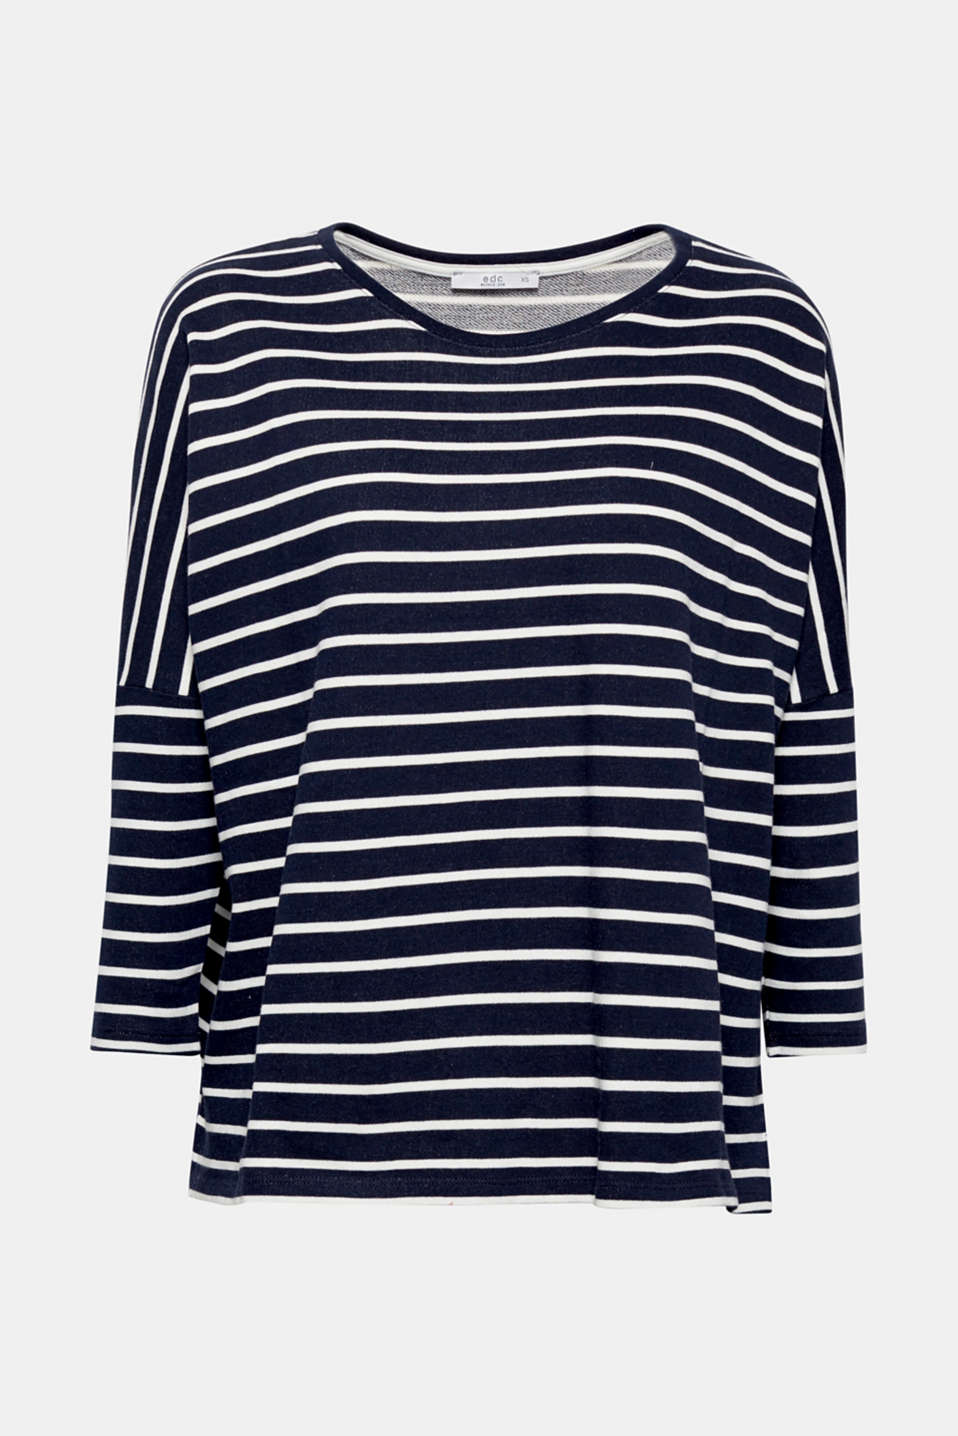 A comfy style for relaxed looks: this jumper wows with its casual, oversized silhouette and nautical stripes.